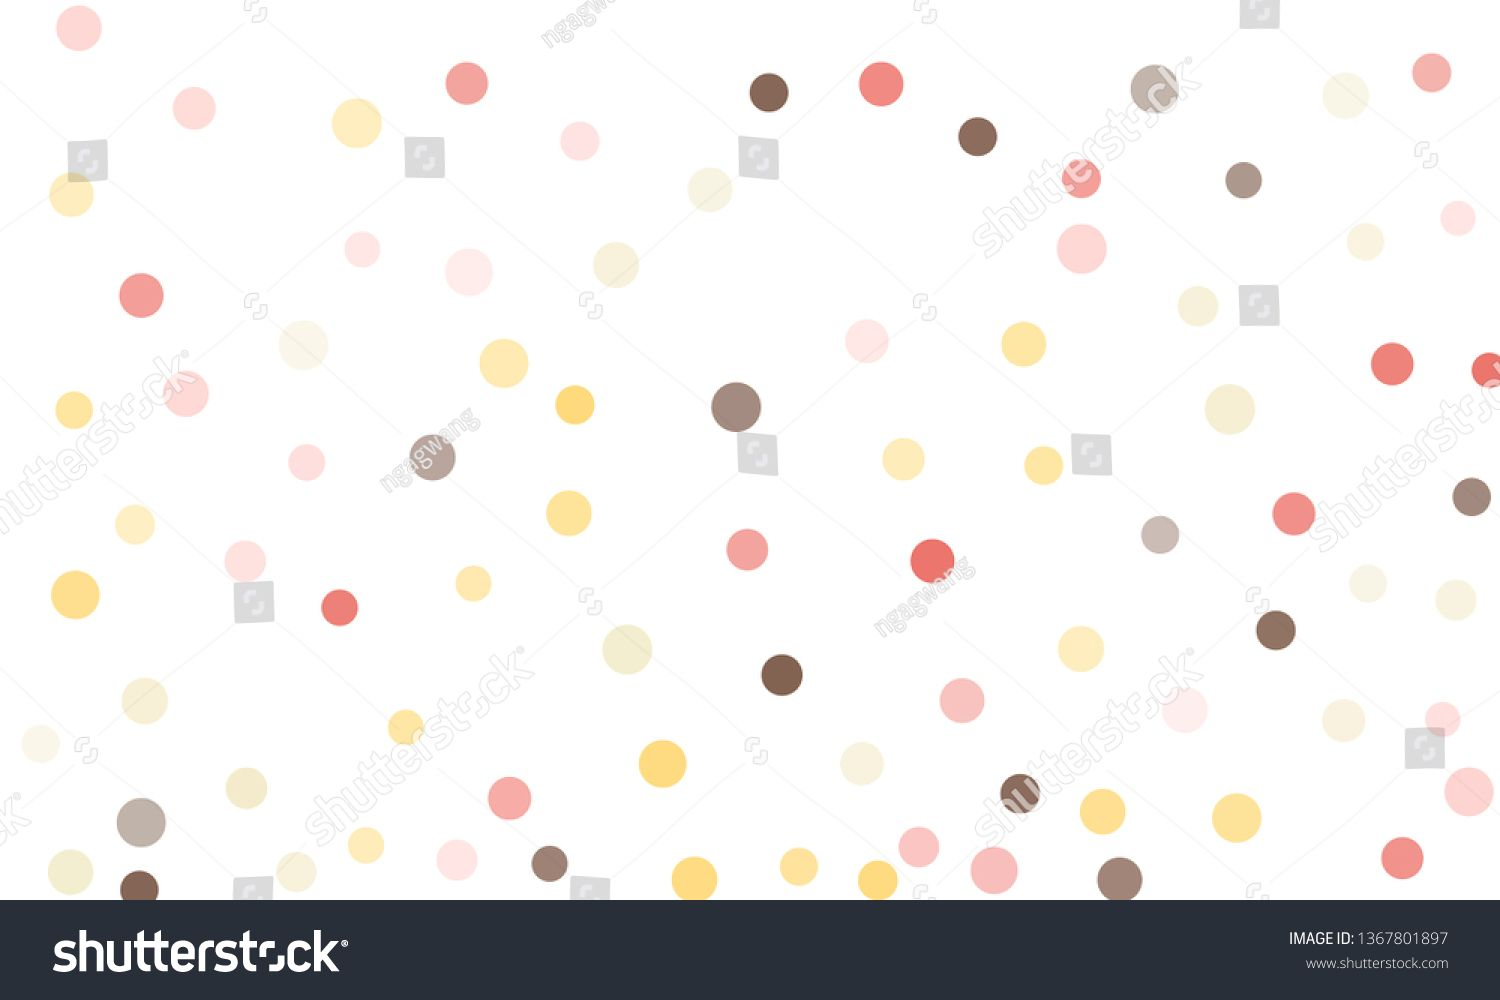 Circles Confetti Falling On Transparent Background Round Dot